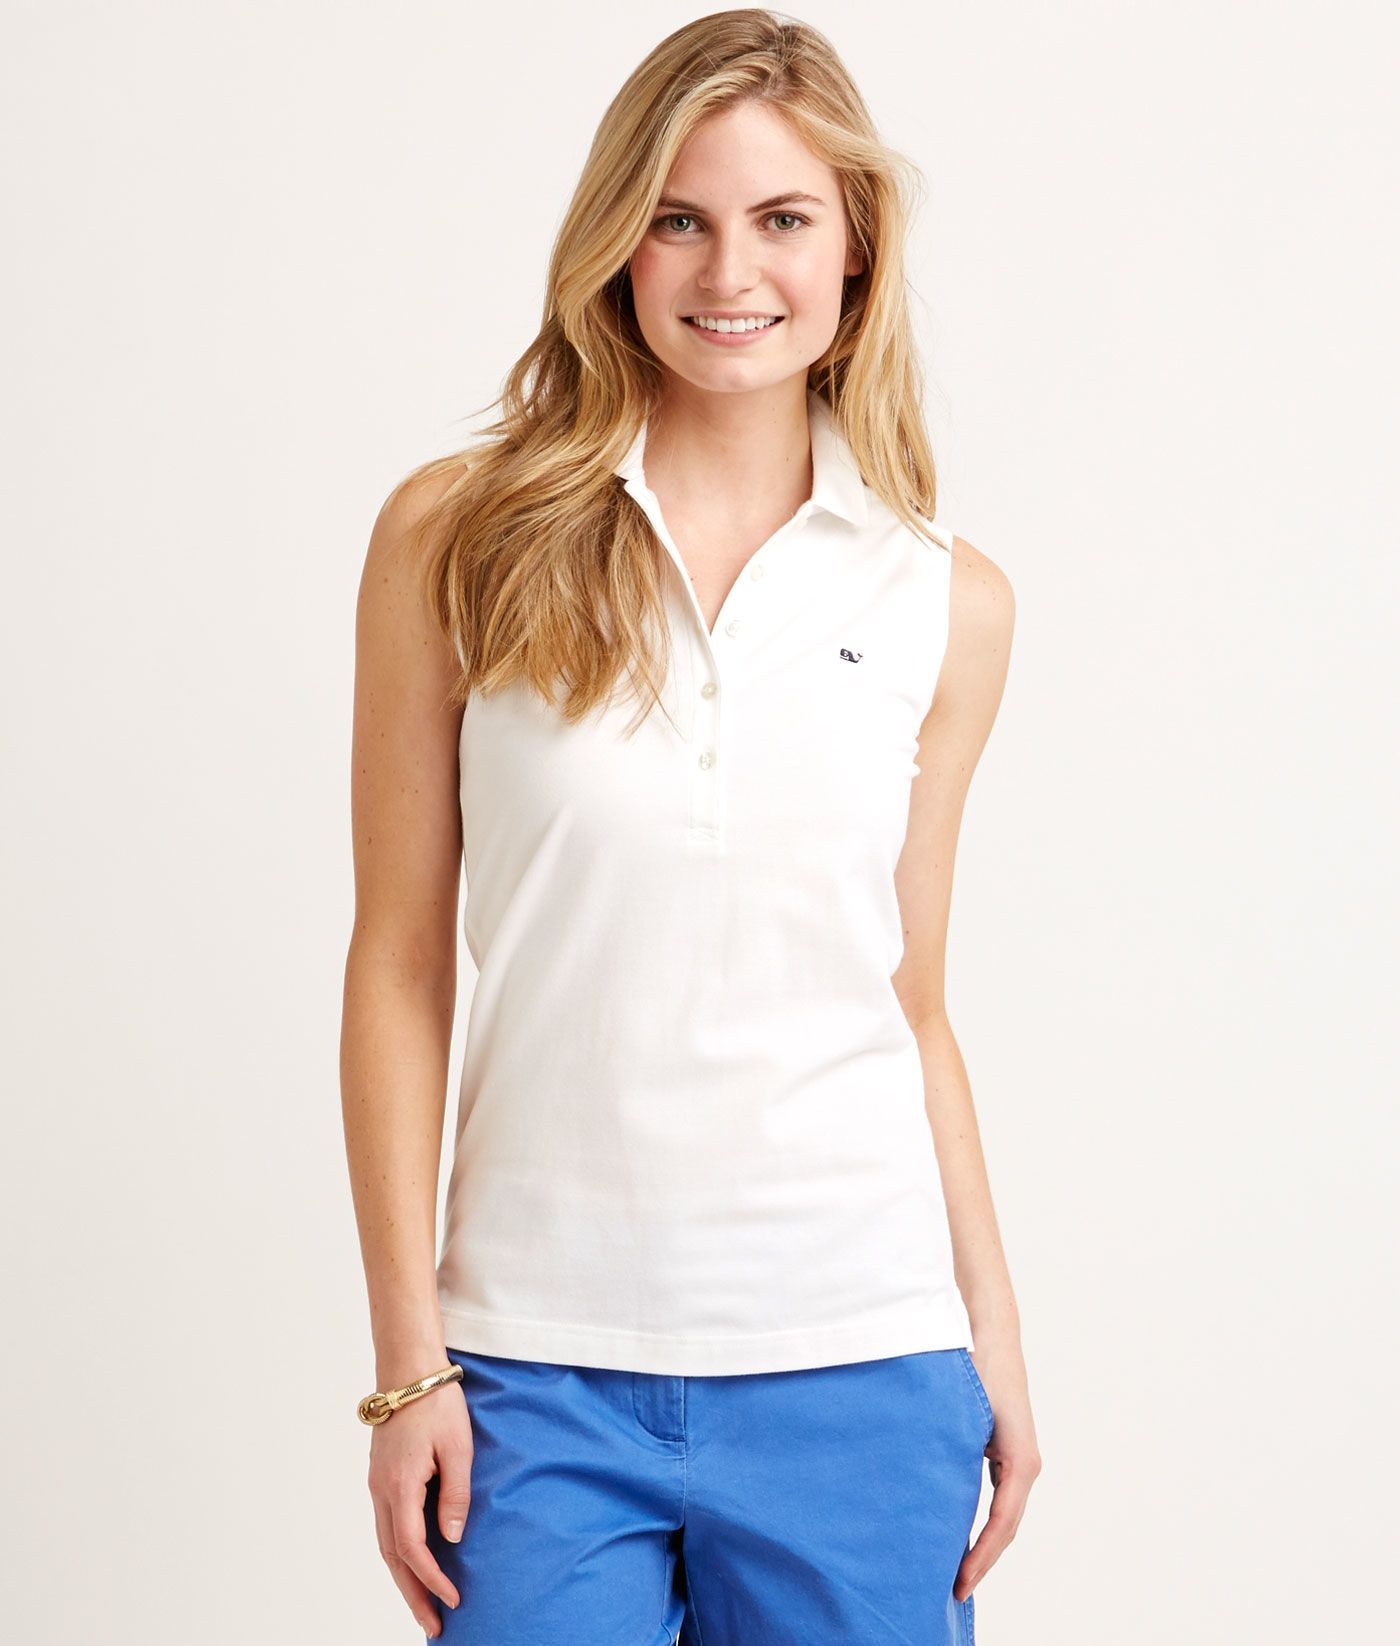 If sunshine on your shoulders makes you happy, like it does us, you'll love  this casually cool women's polo.